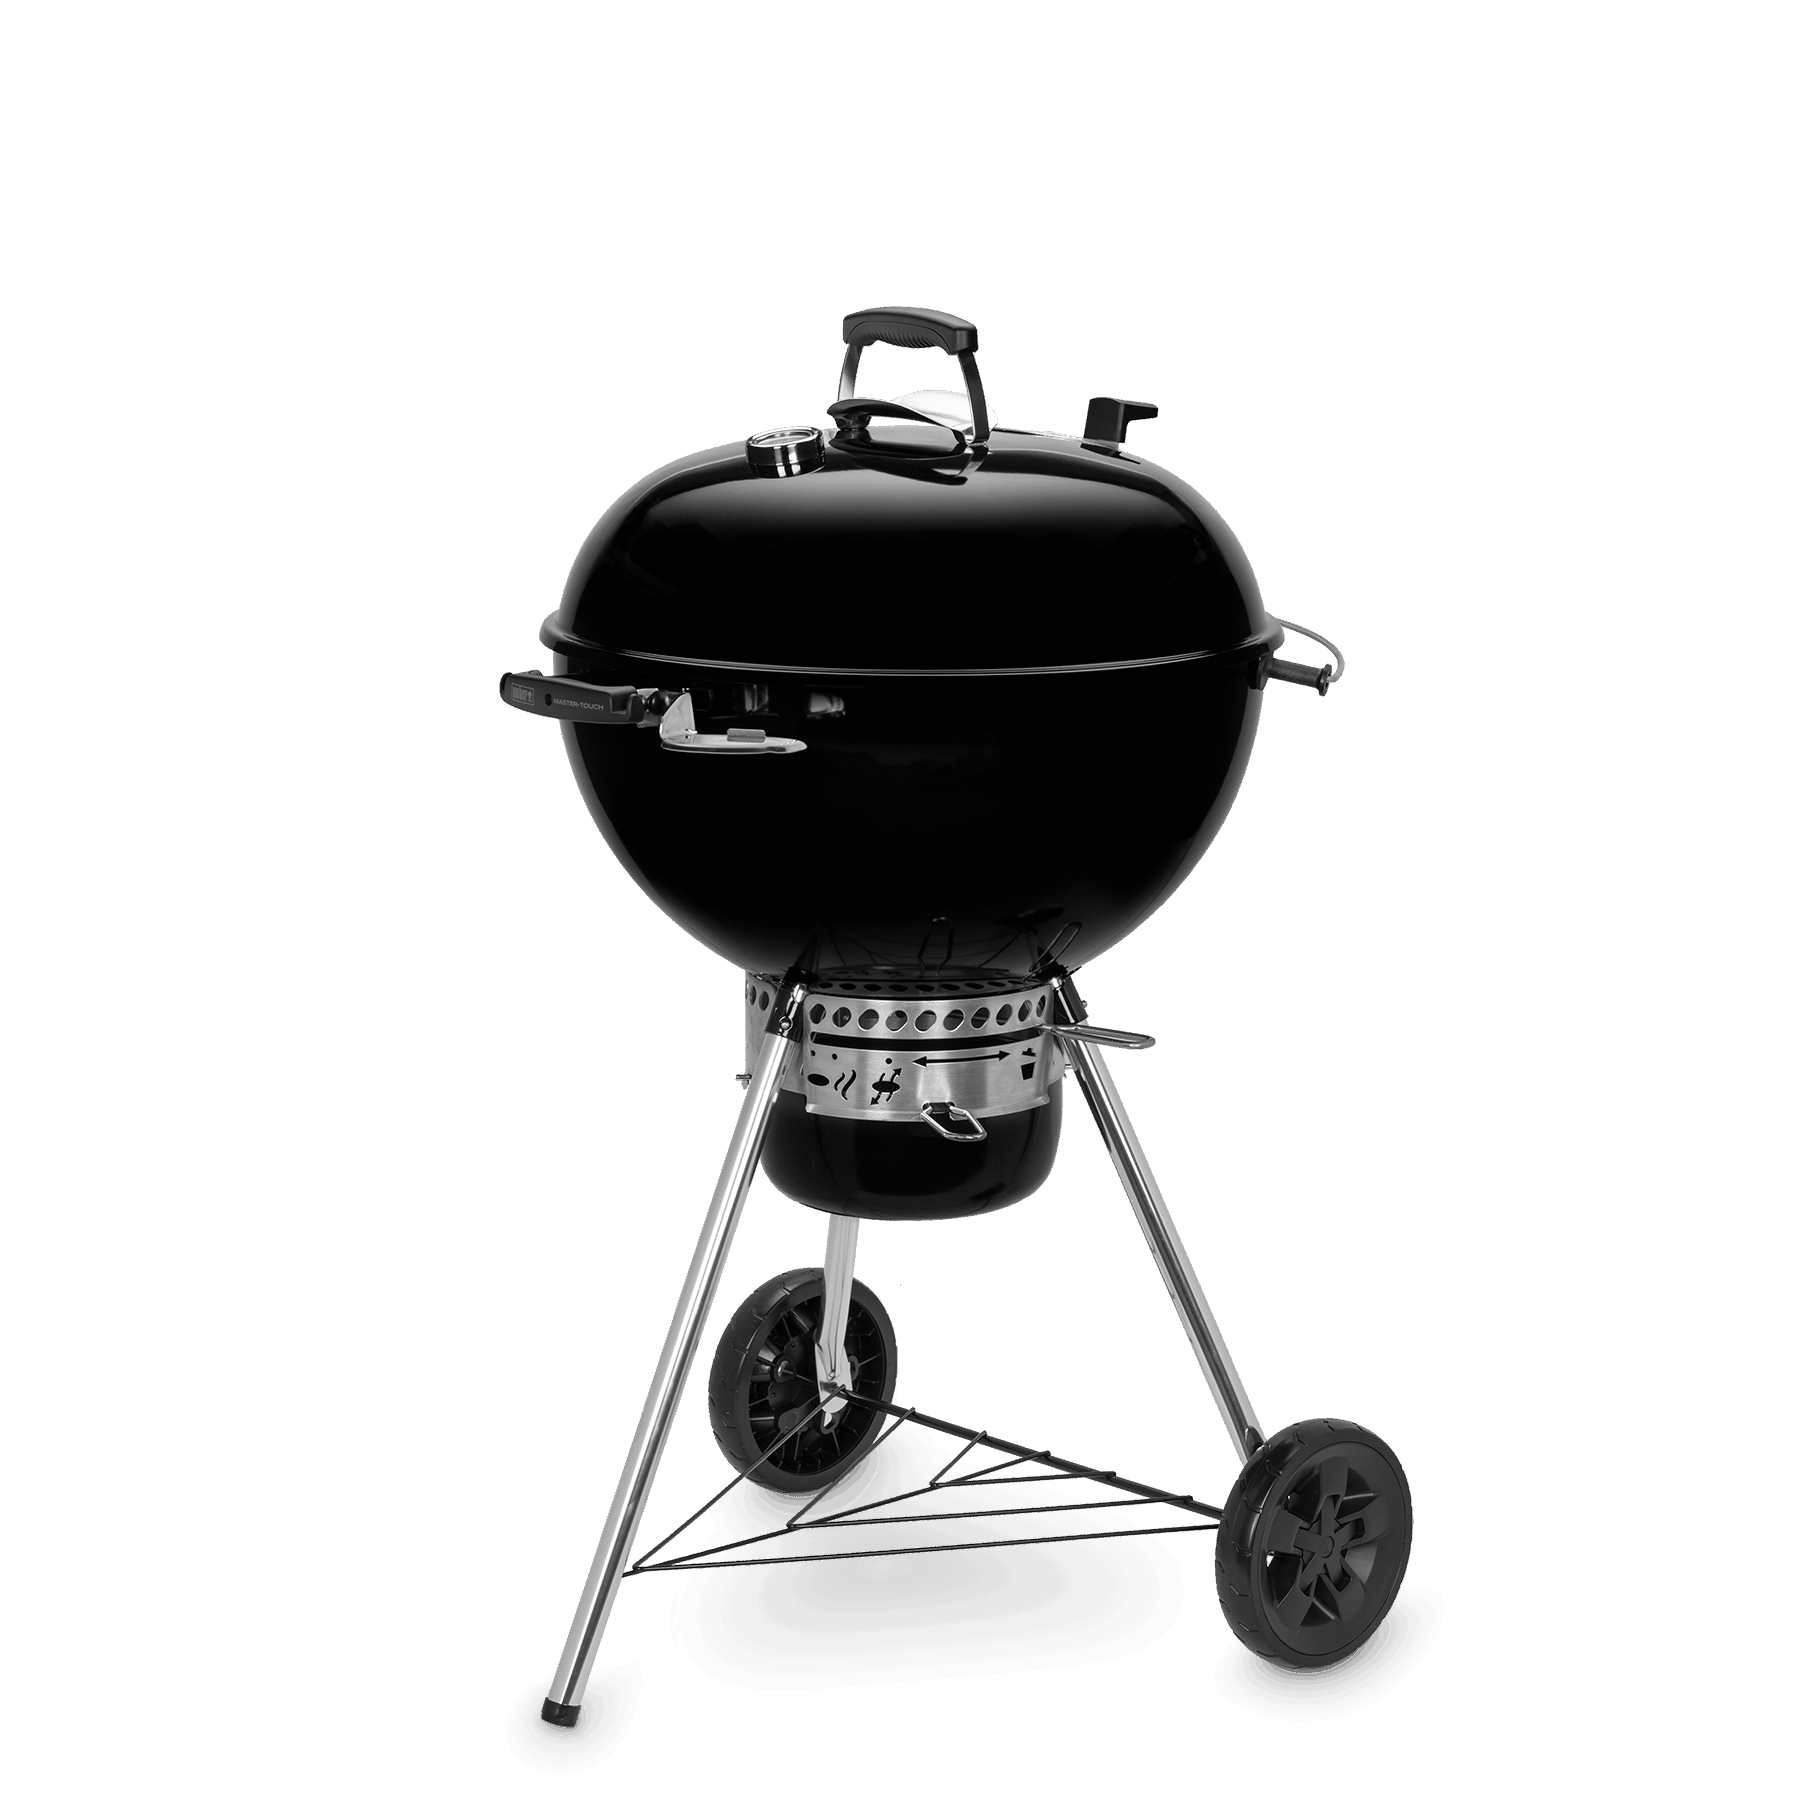 Master-Touch GBS E-5755 Charcoal Barbecue 57 cm